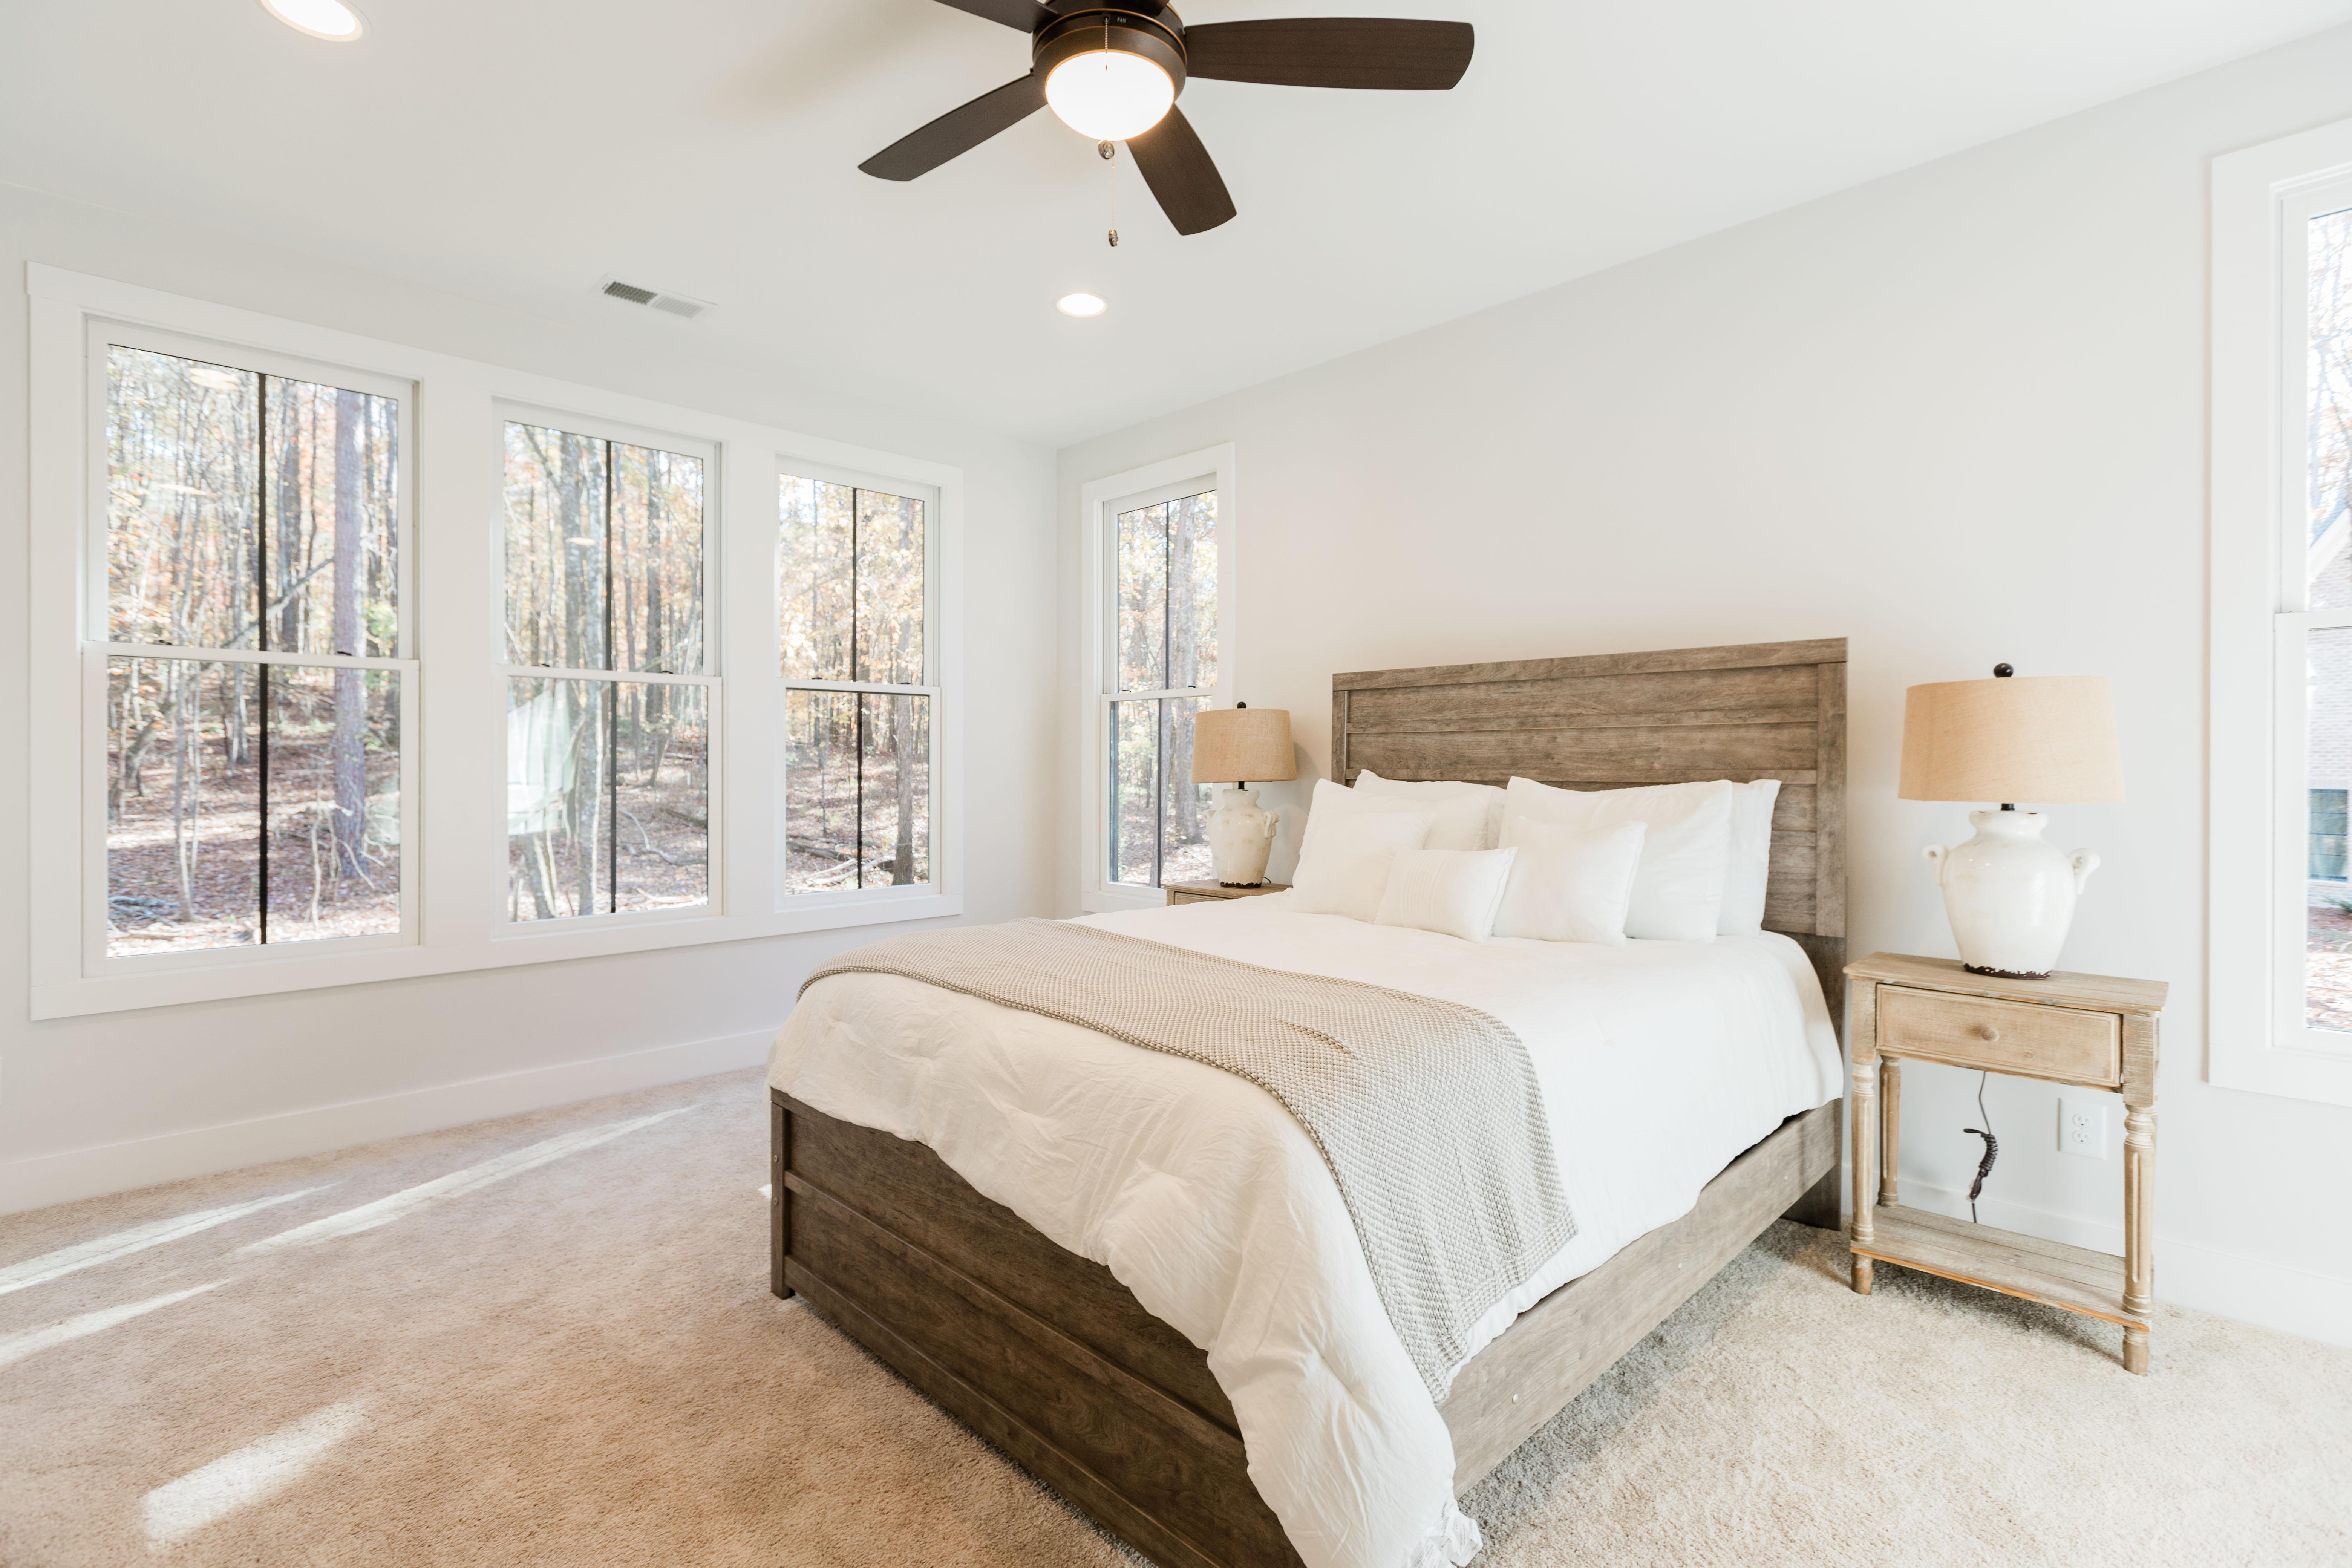 Bedroom featured in The Farmville Cottage By Holland Homes in Birmingham, AL